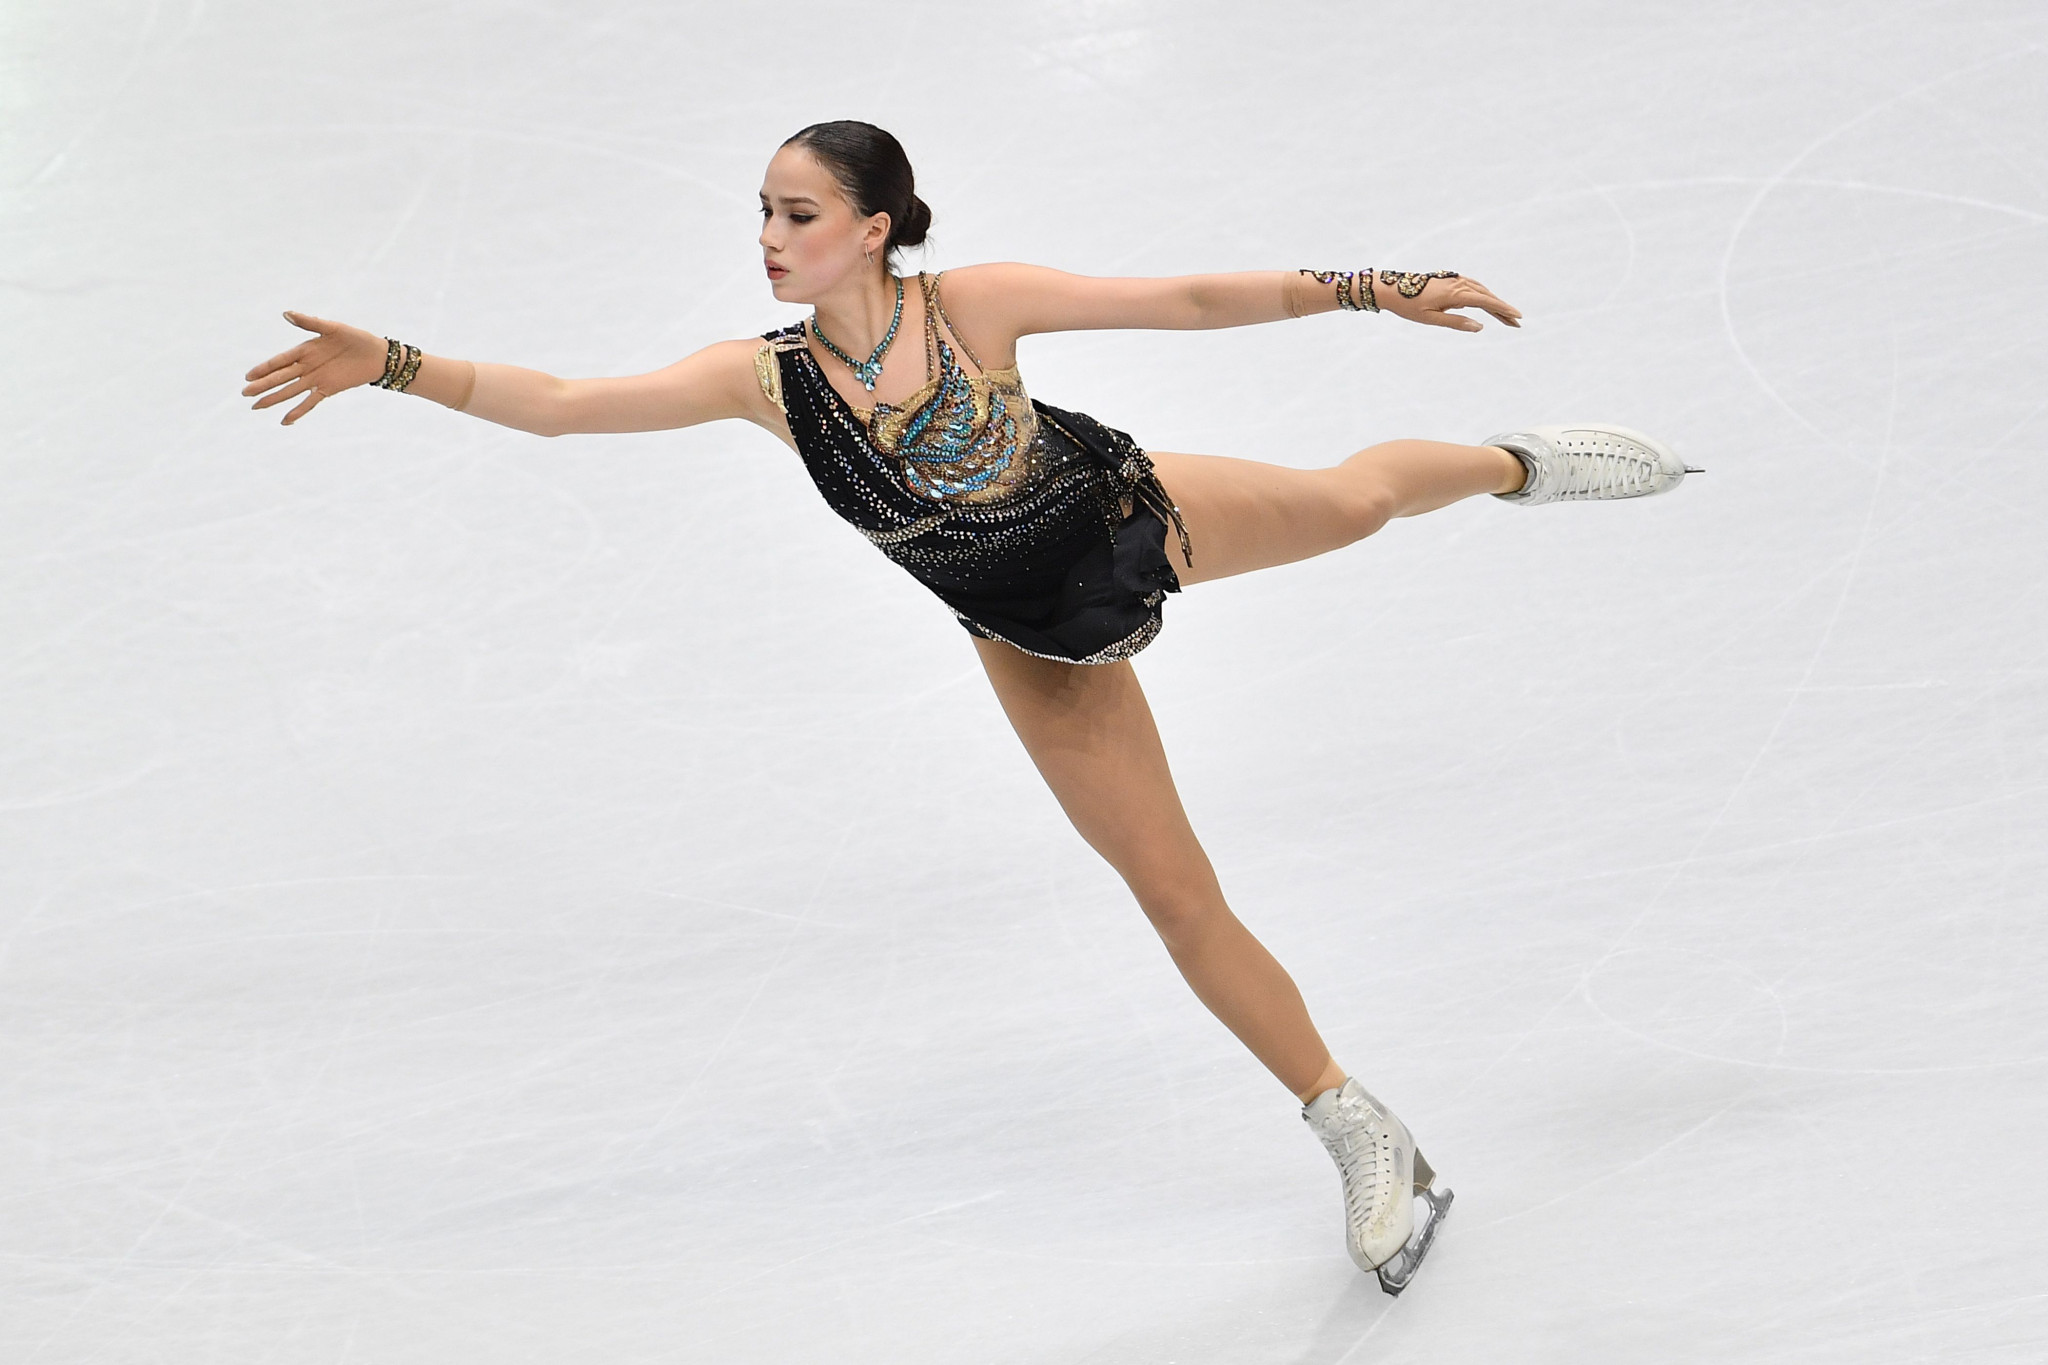 Zagitova omitted from Russian figure skating team for Olympic season